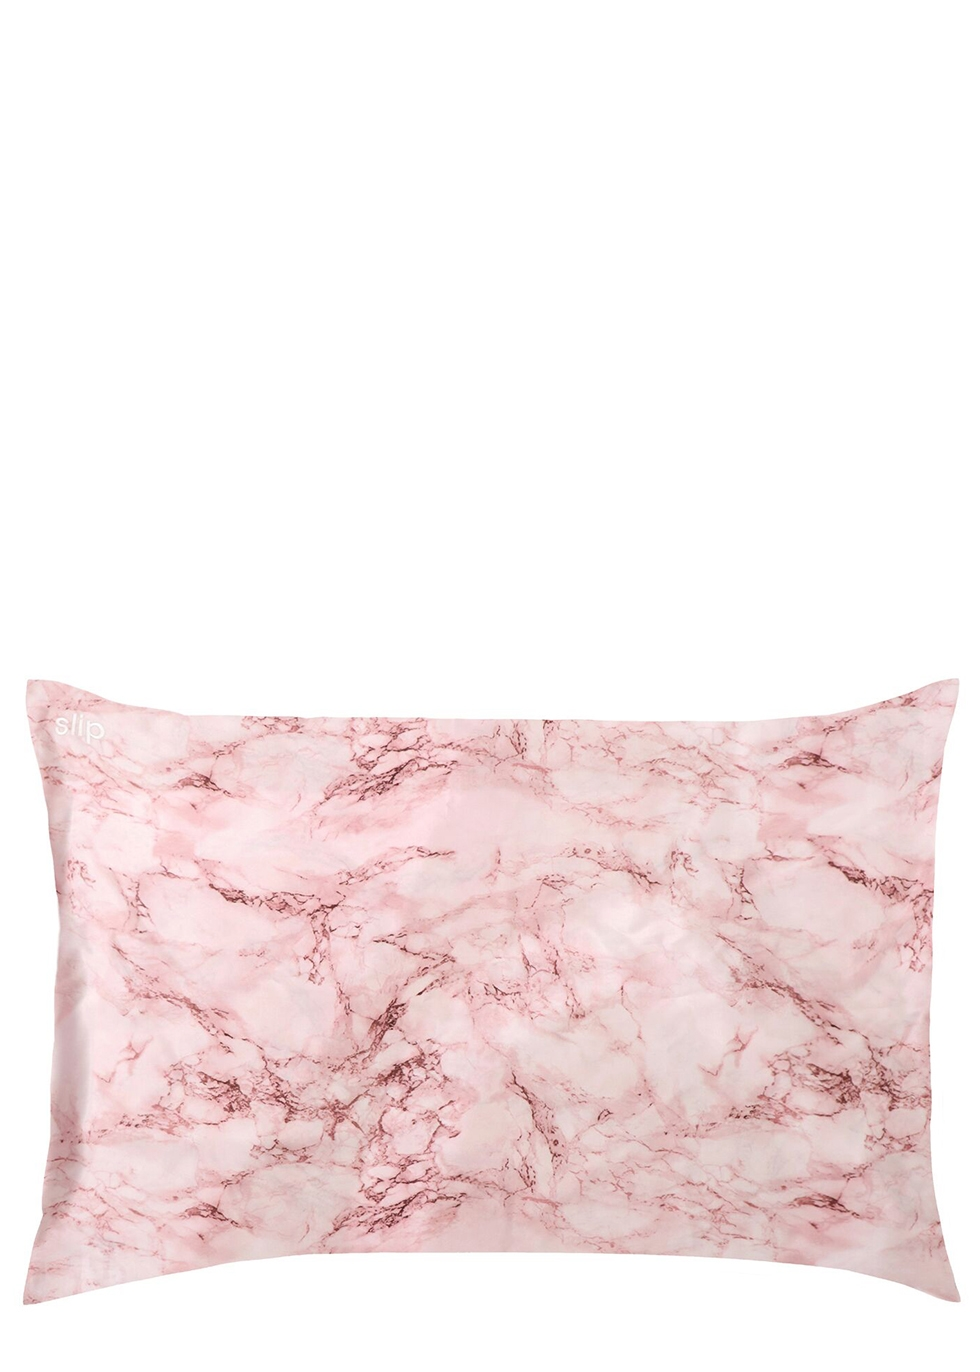 SLIP Pink Marble Silk Pillowcase